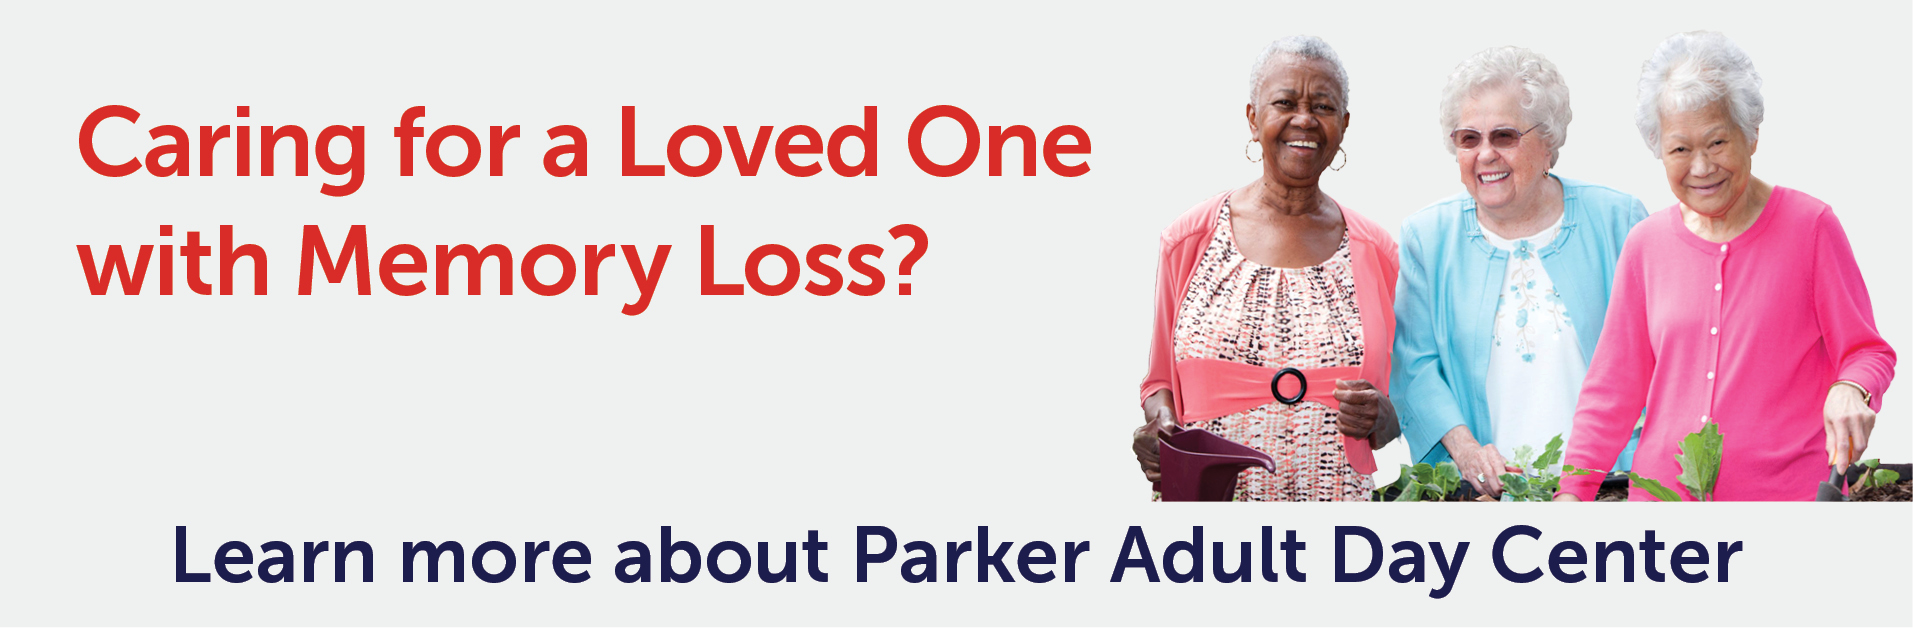 Parker Adult Day Center